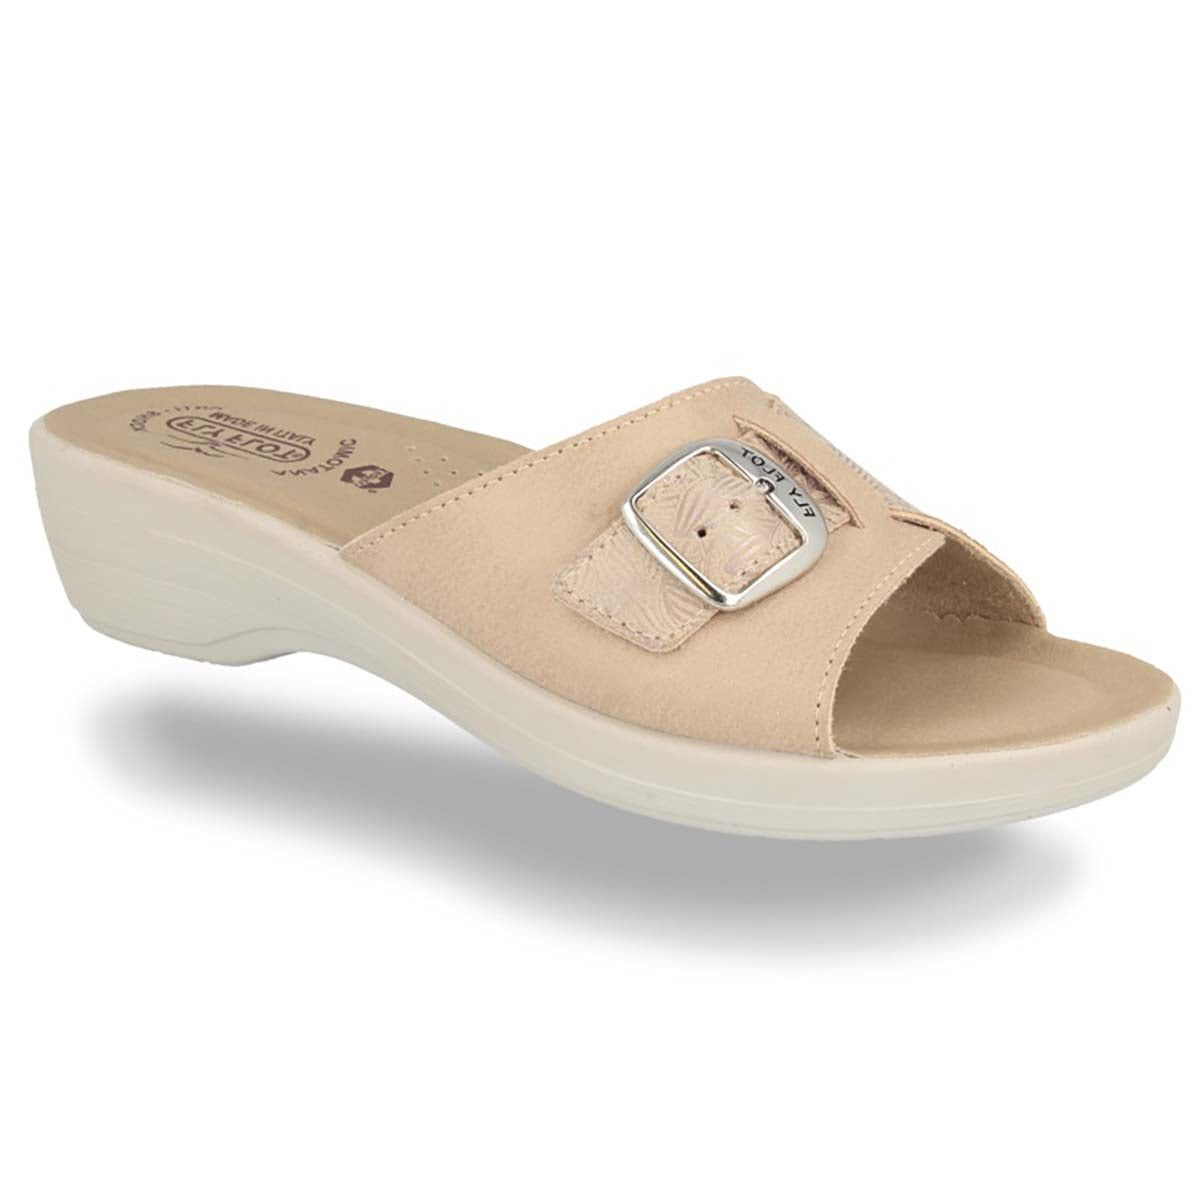 See photos Cloth Woman Slipper Beige (T5C32MB)